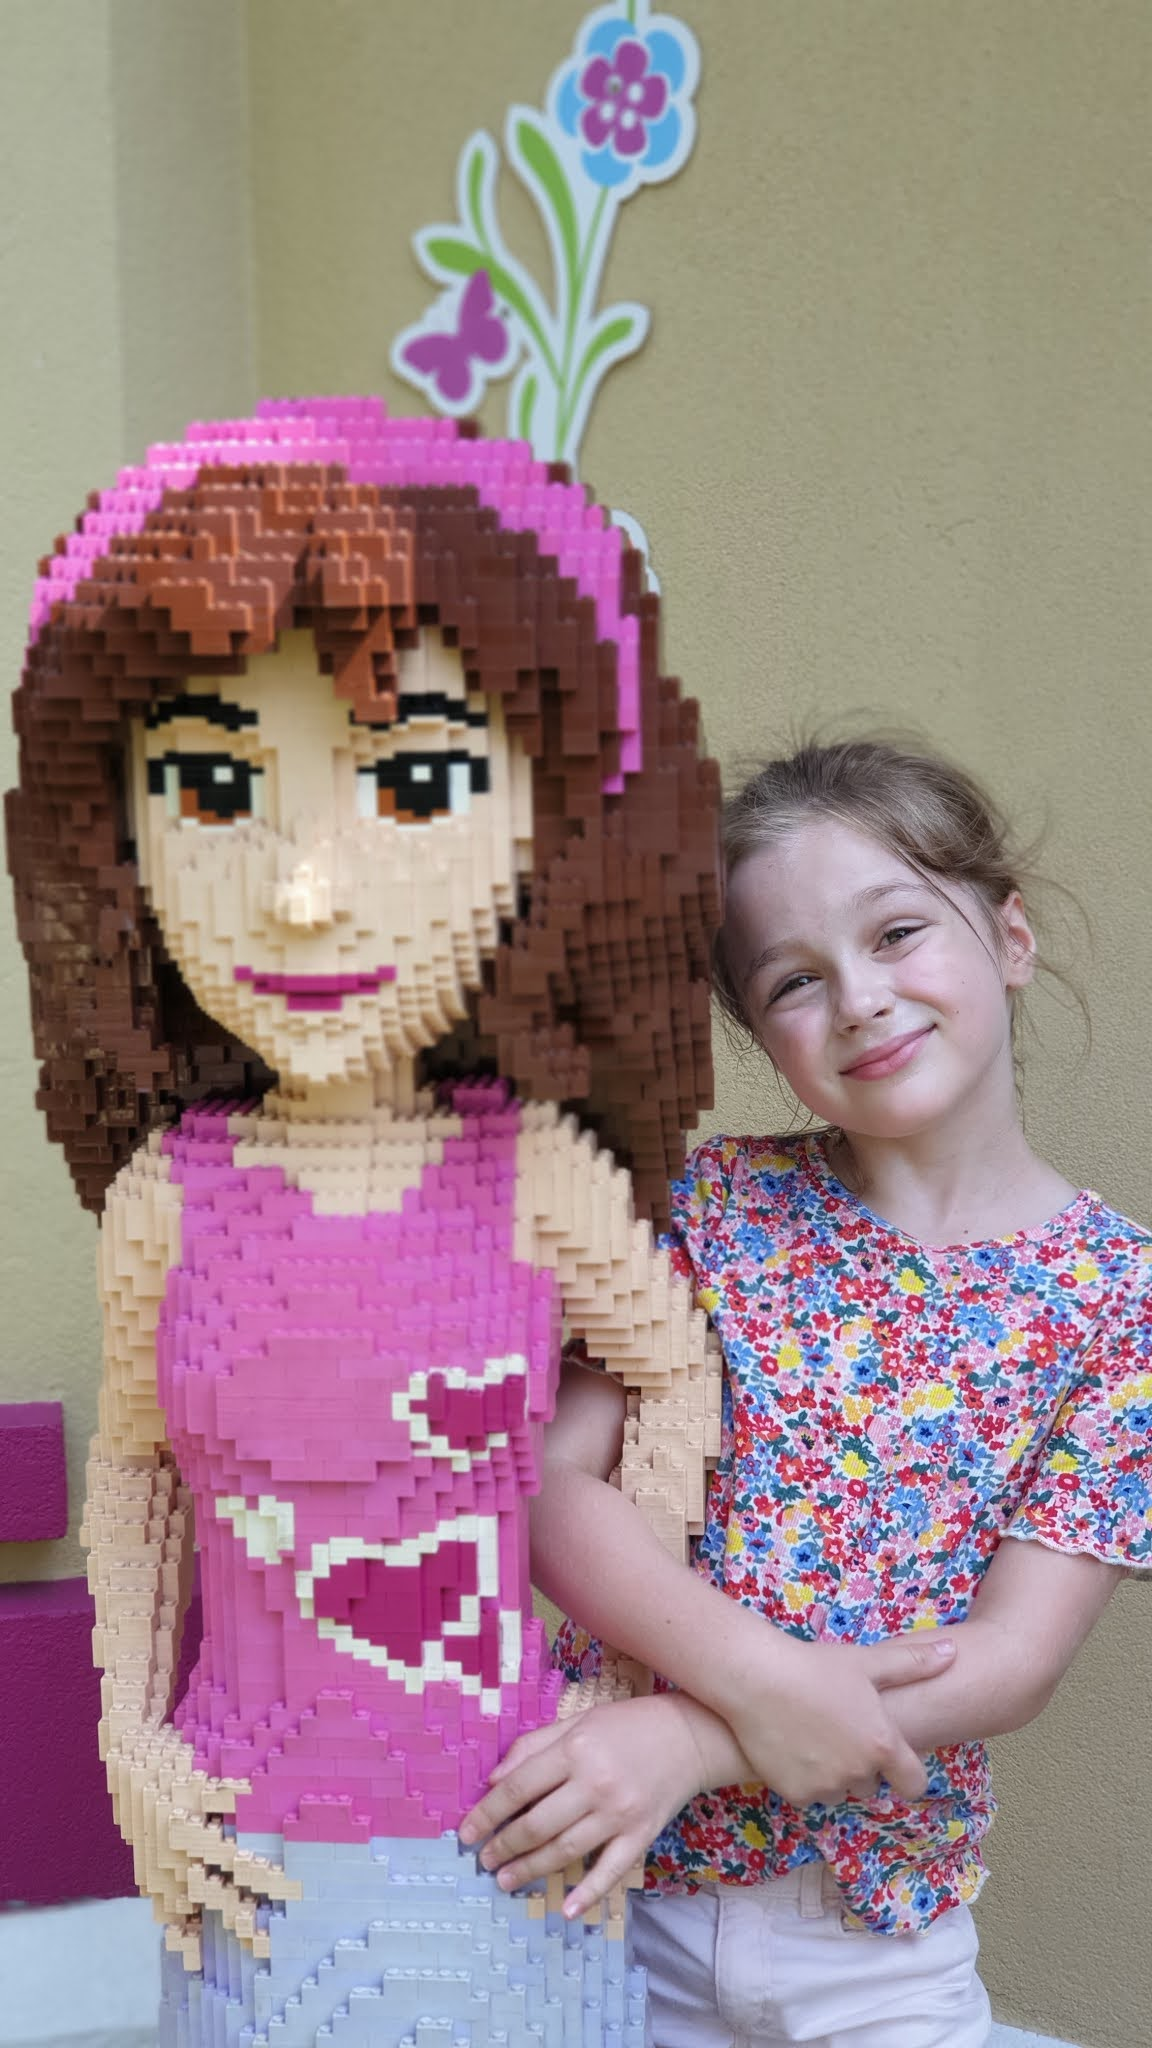 lego friends girl sculpture